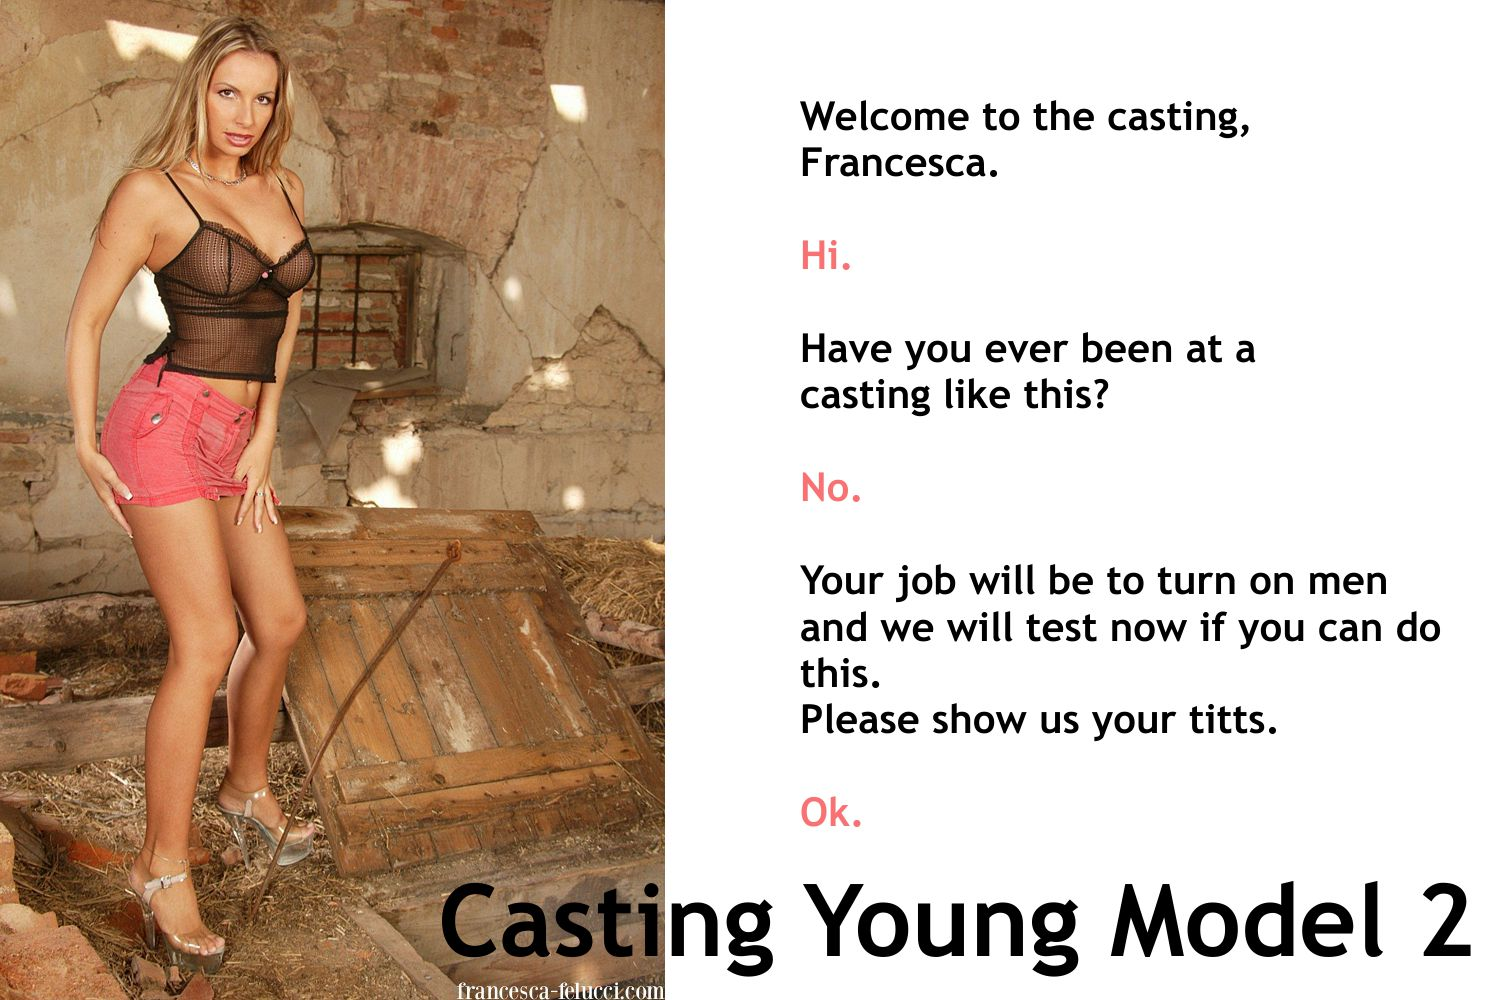 casting_young_model_2_001